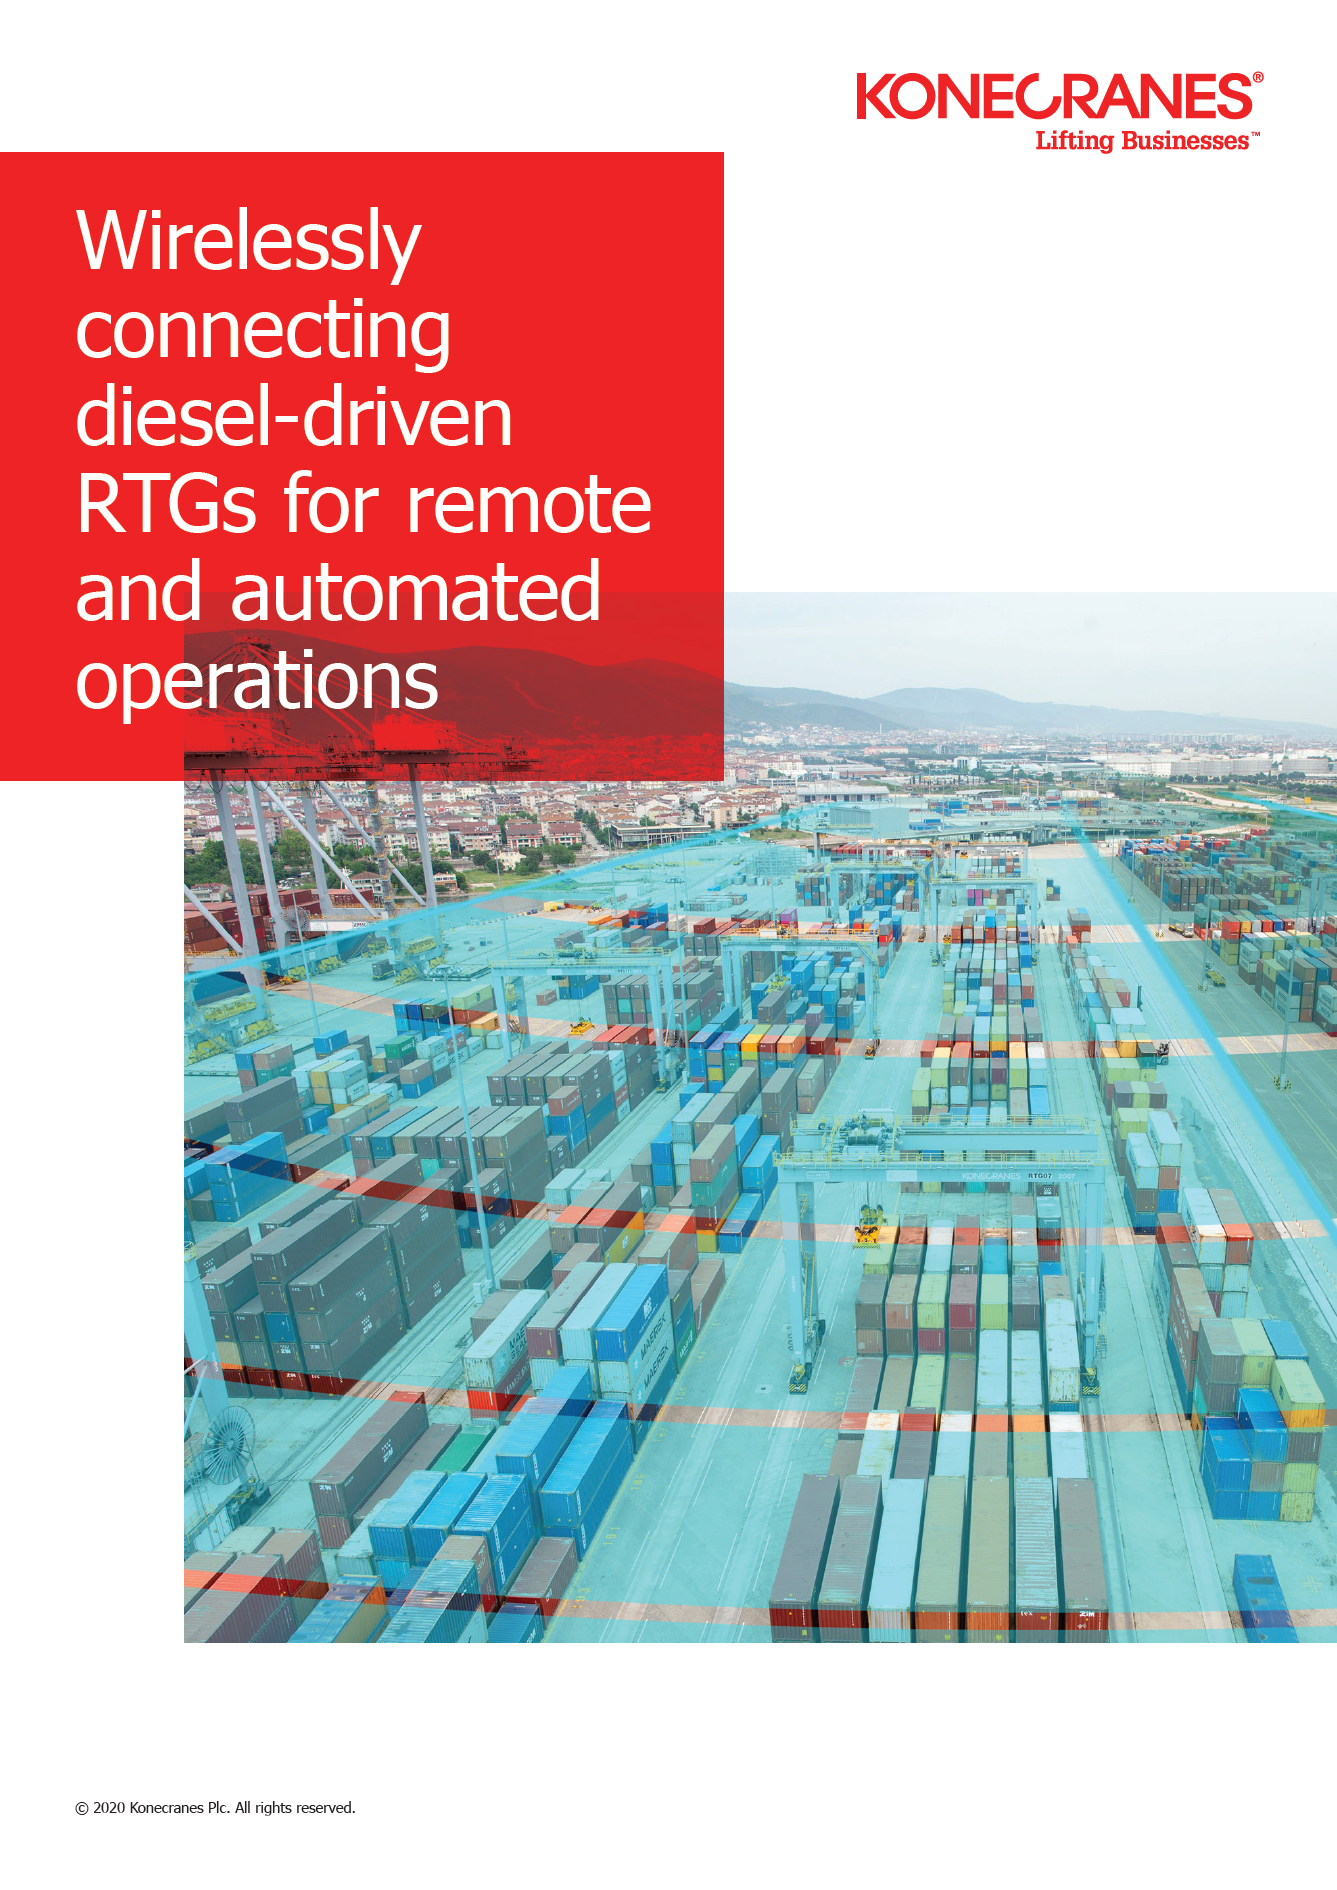 Wirelessly connecting diesel-driven RTGs for remote and automated operations